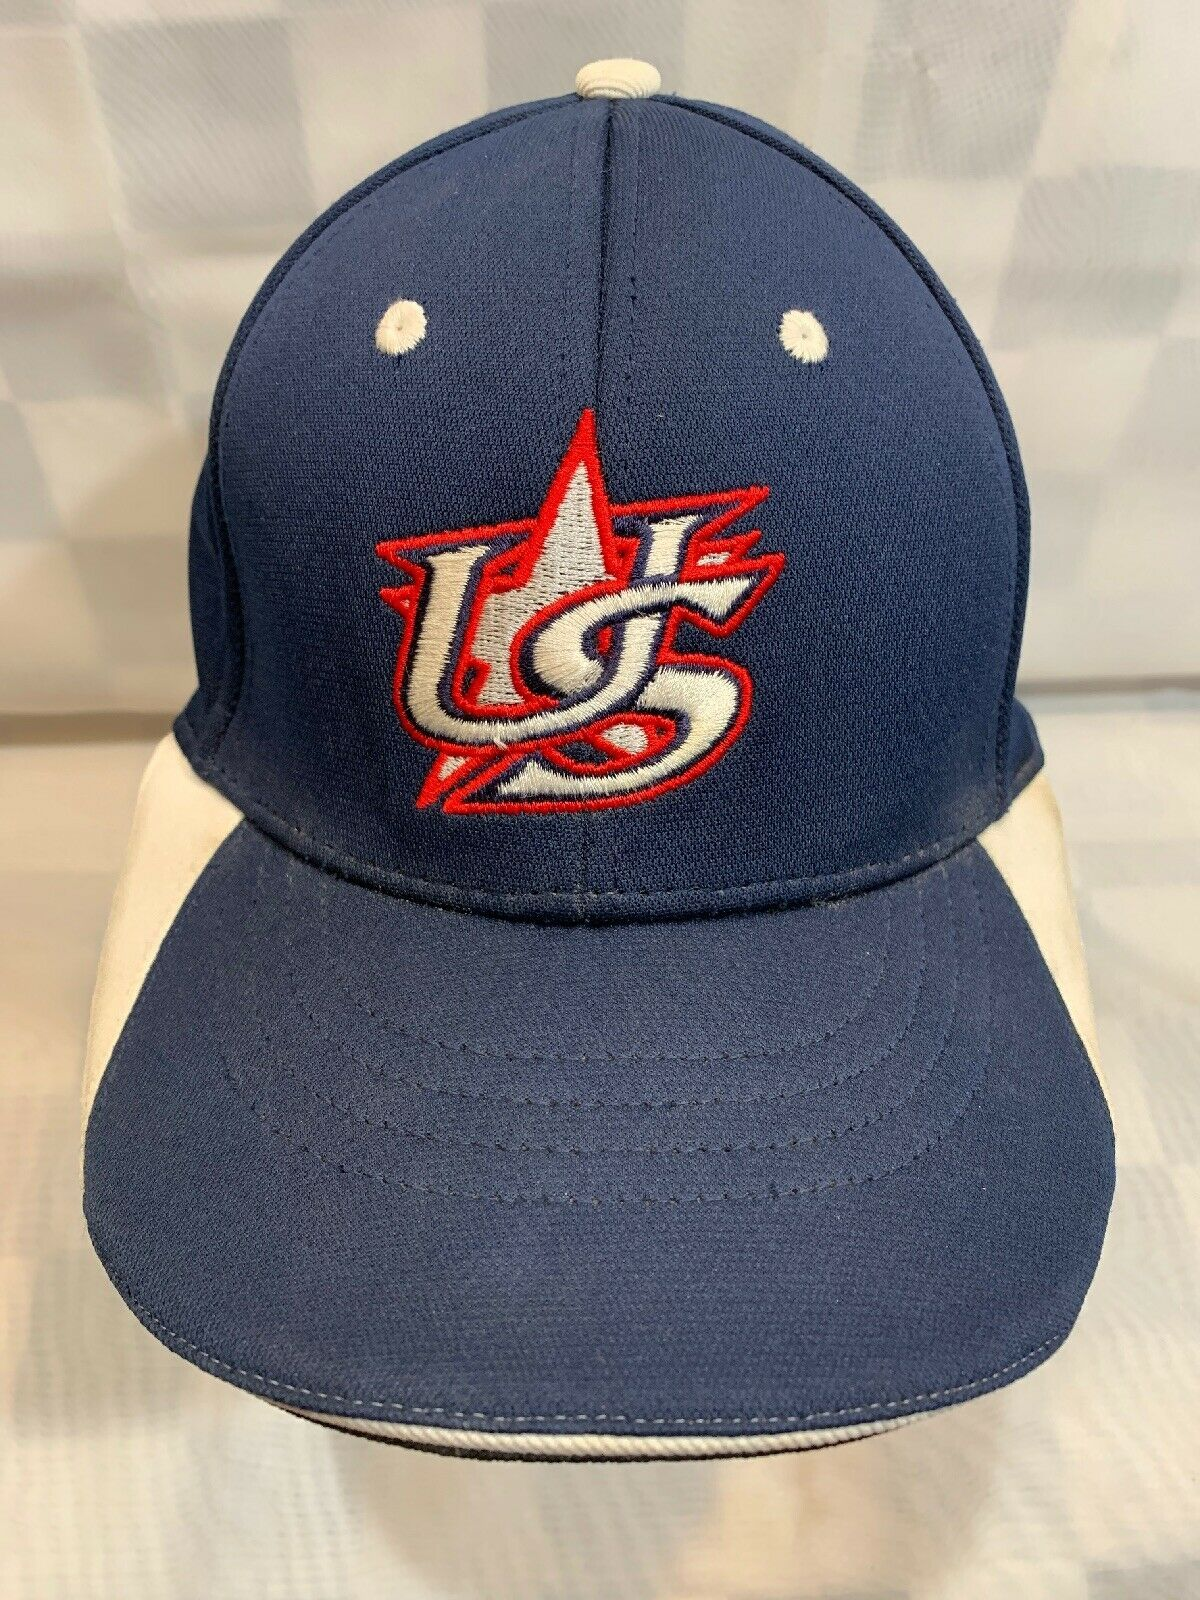 Primary image for US Star Blue White Red Fitted M/L Adult Baseball Ball Cap Hat